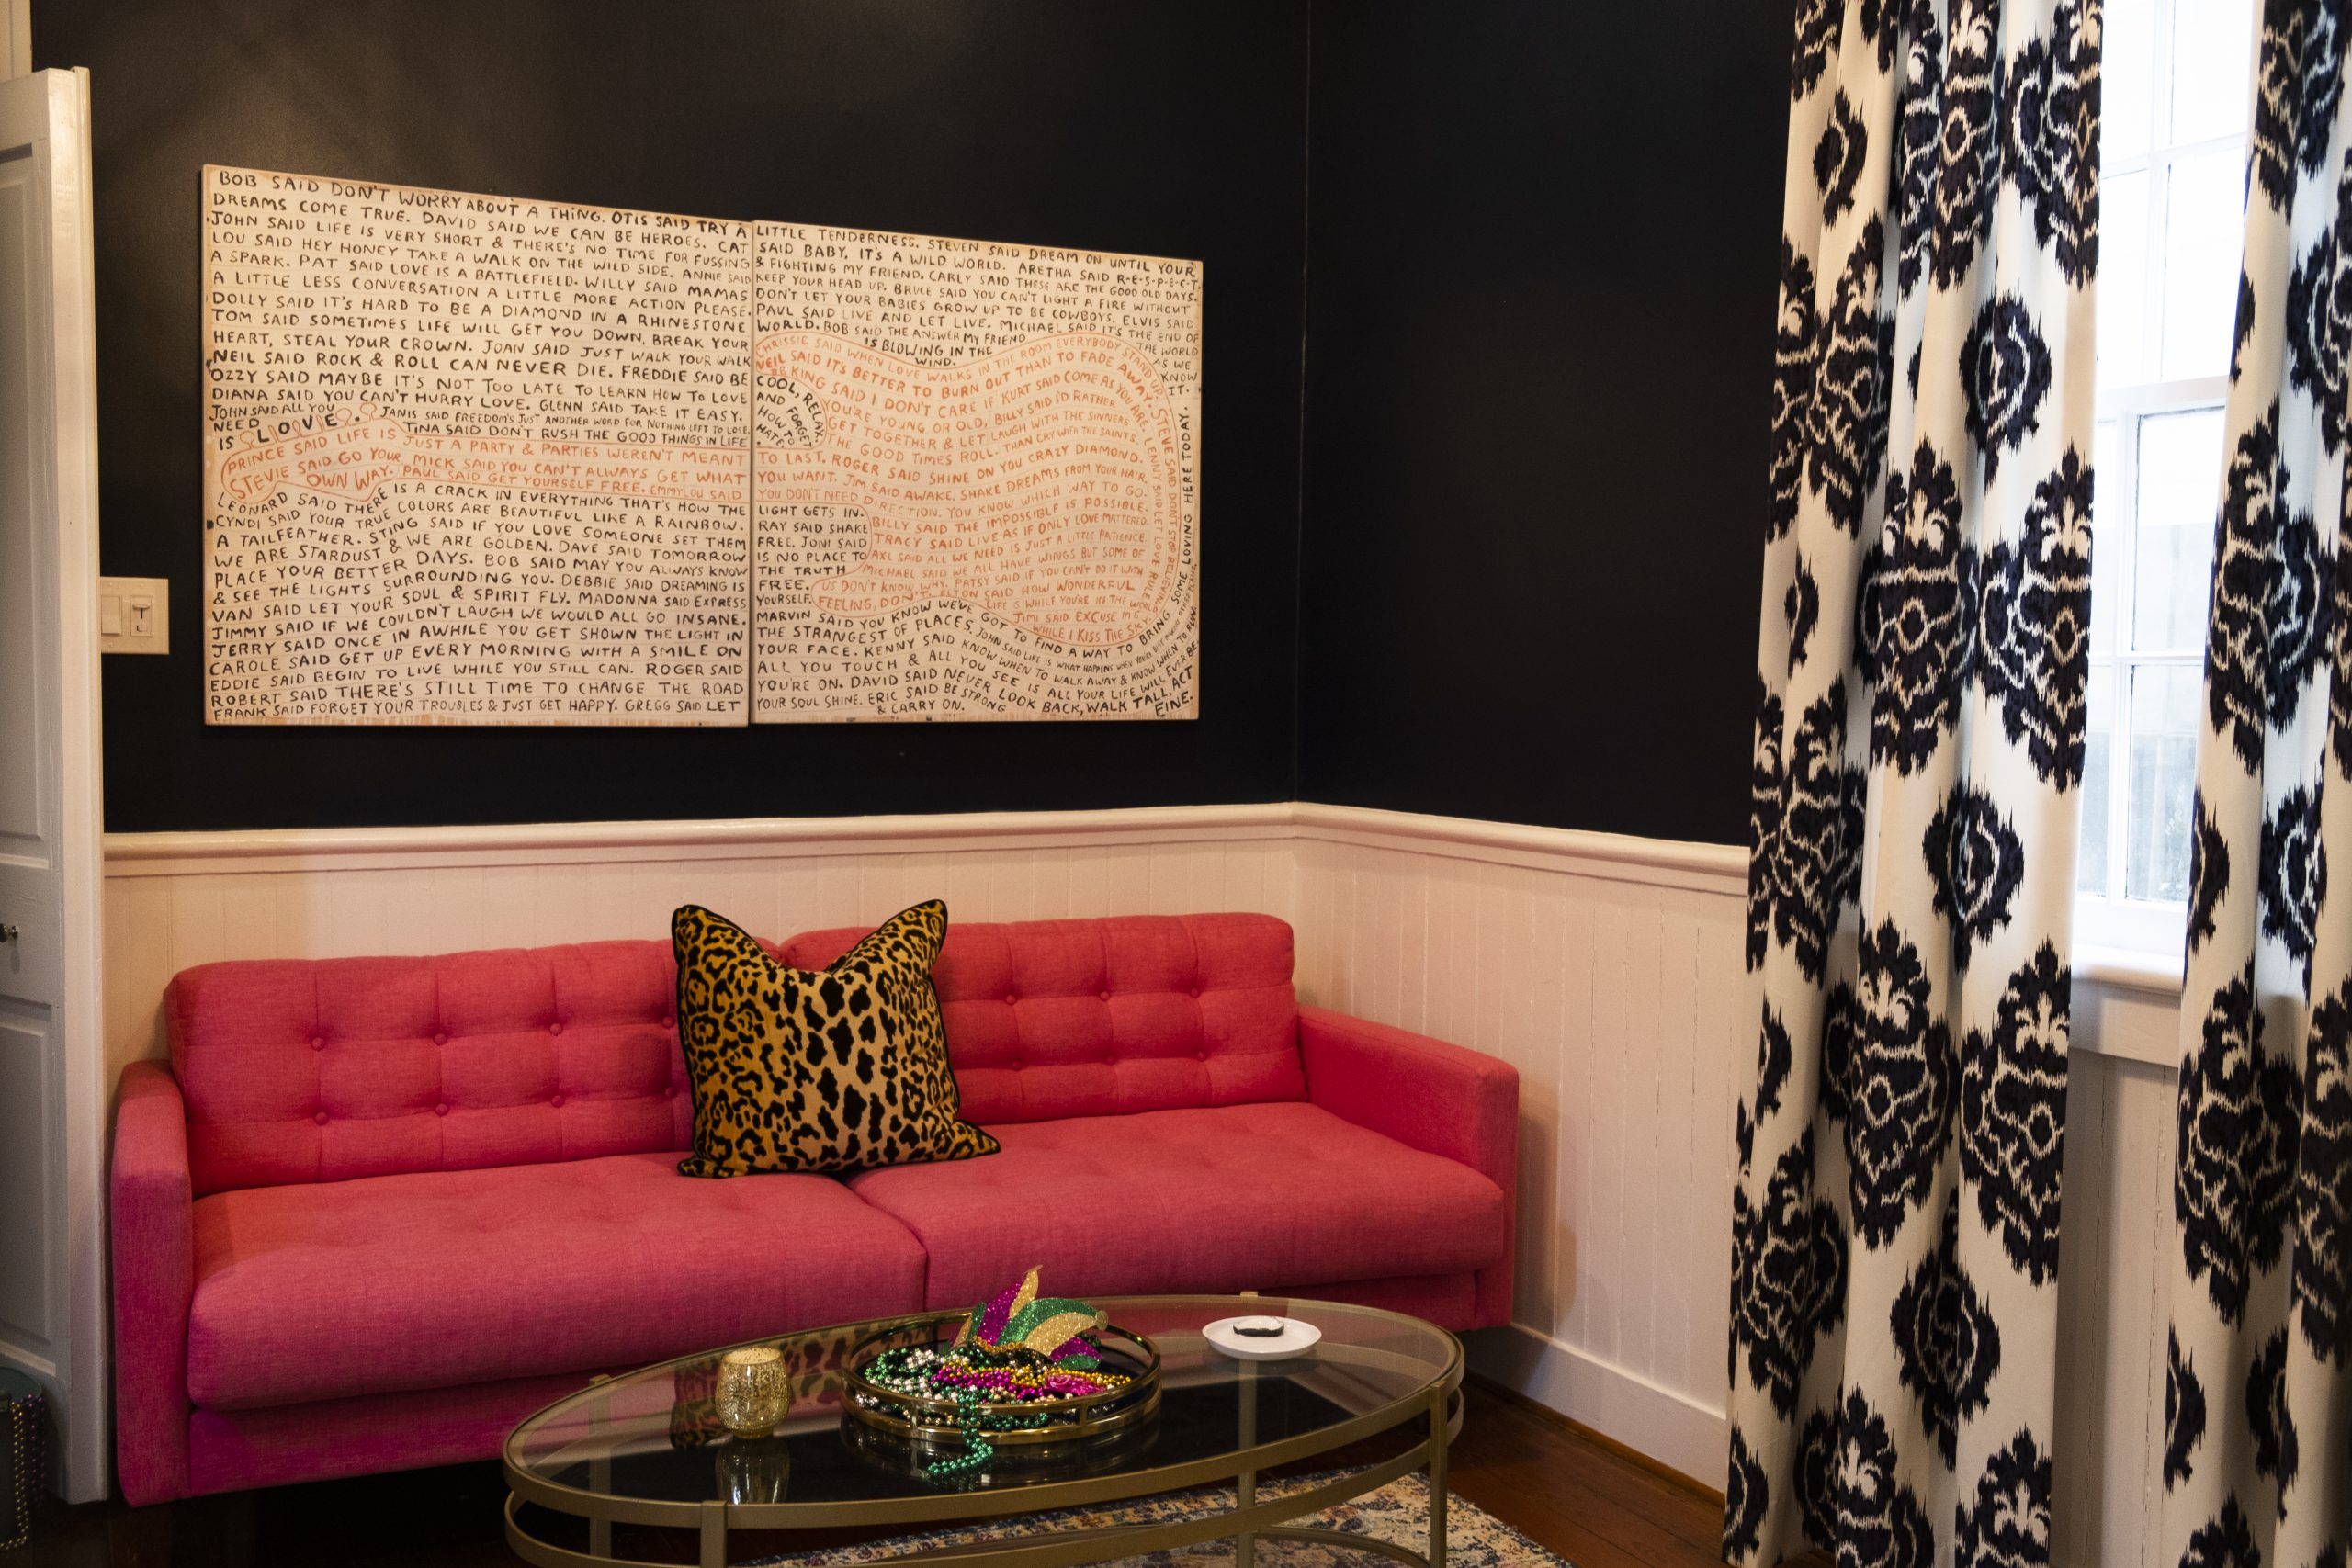 Pink Sofa with Leopard Print Pillow and Coffee Table with Mardi Gras Throws